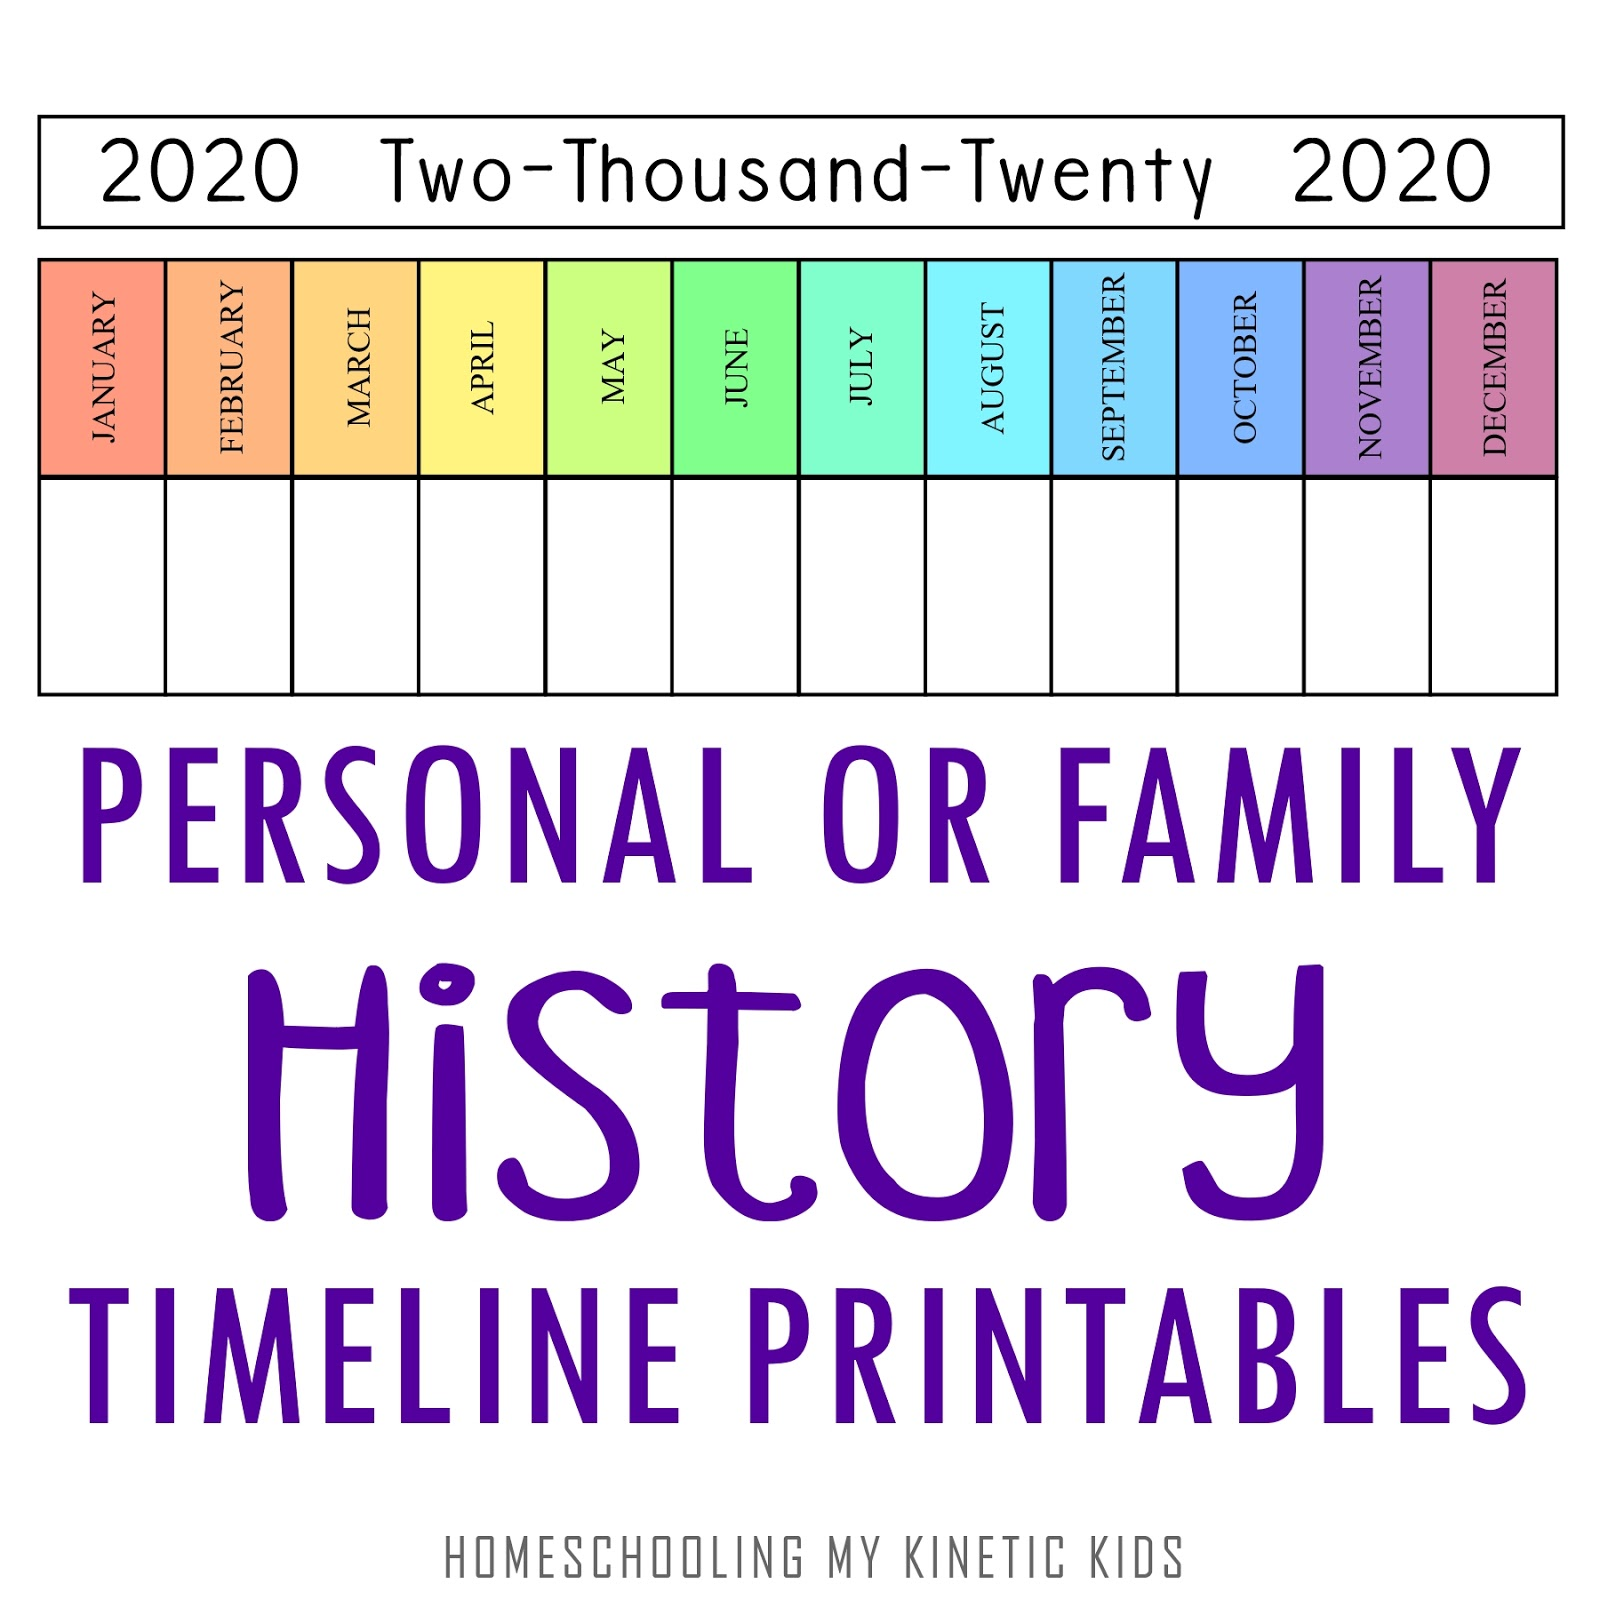 Personal Or Family Timeline Printables